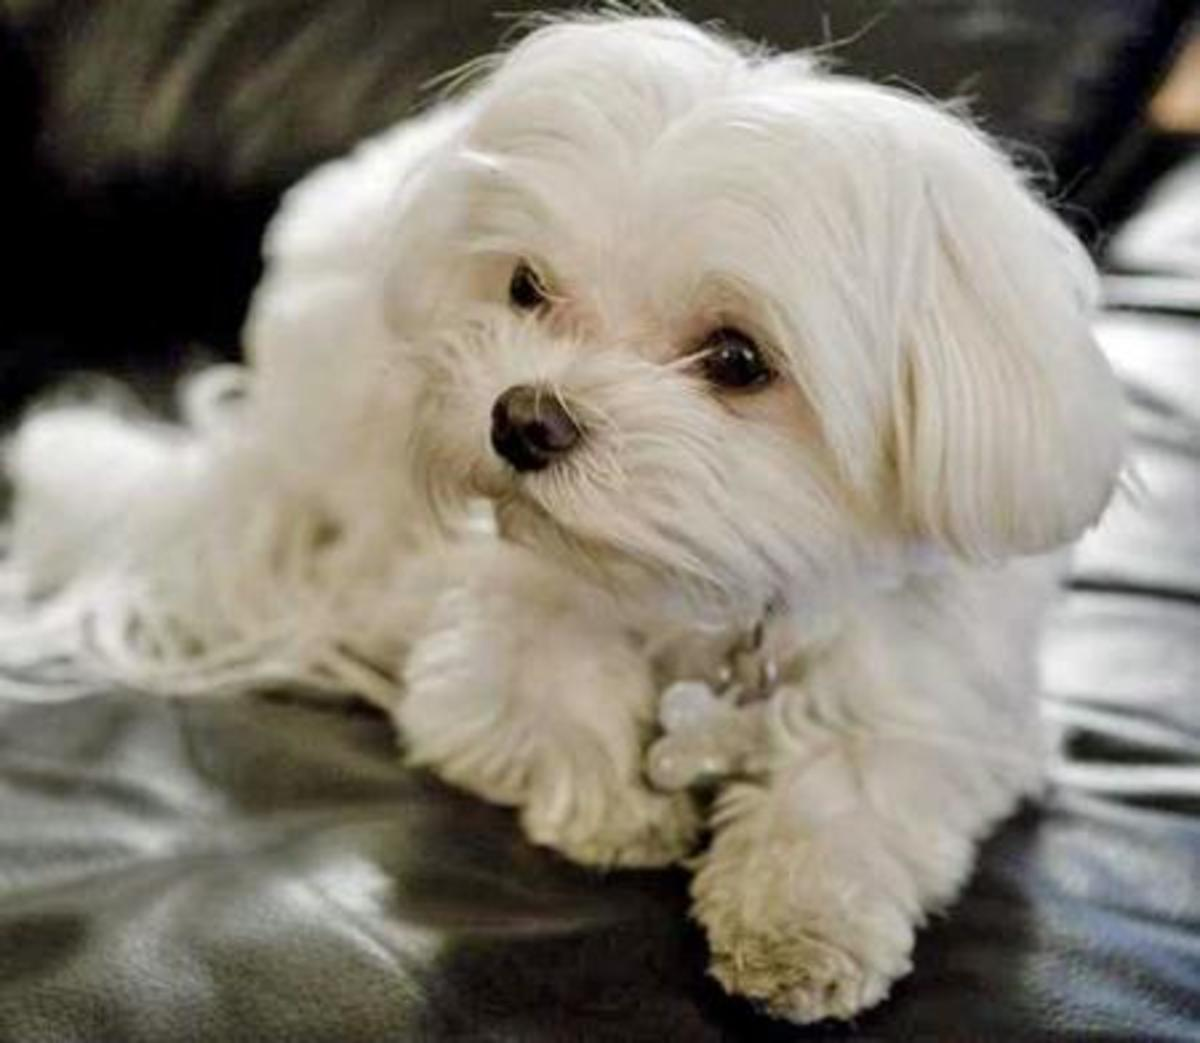 Maltese make great couch ornaments—as long as they do not have excitement urination!